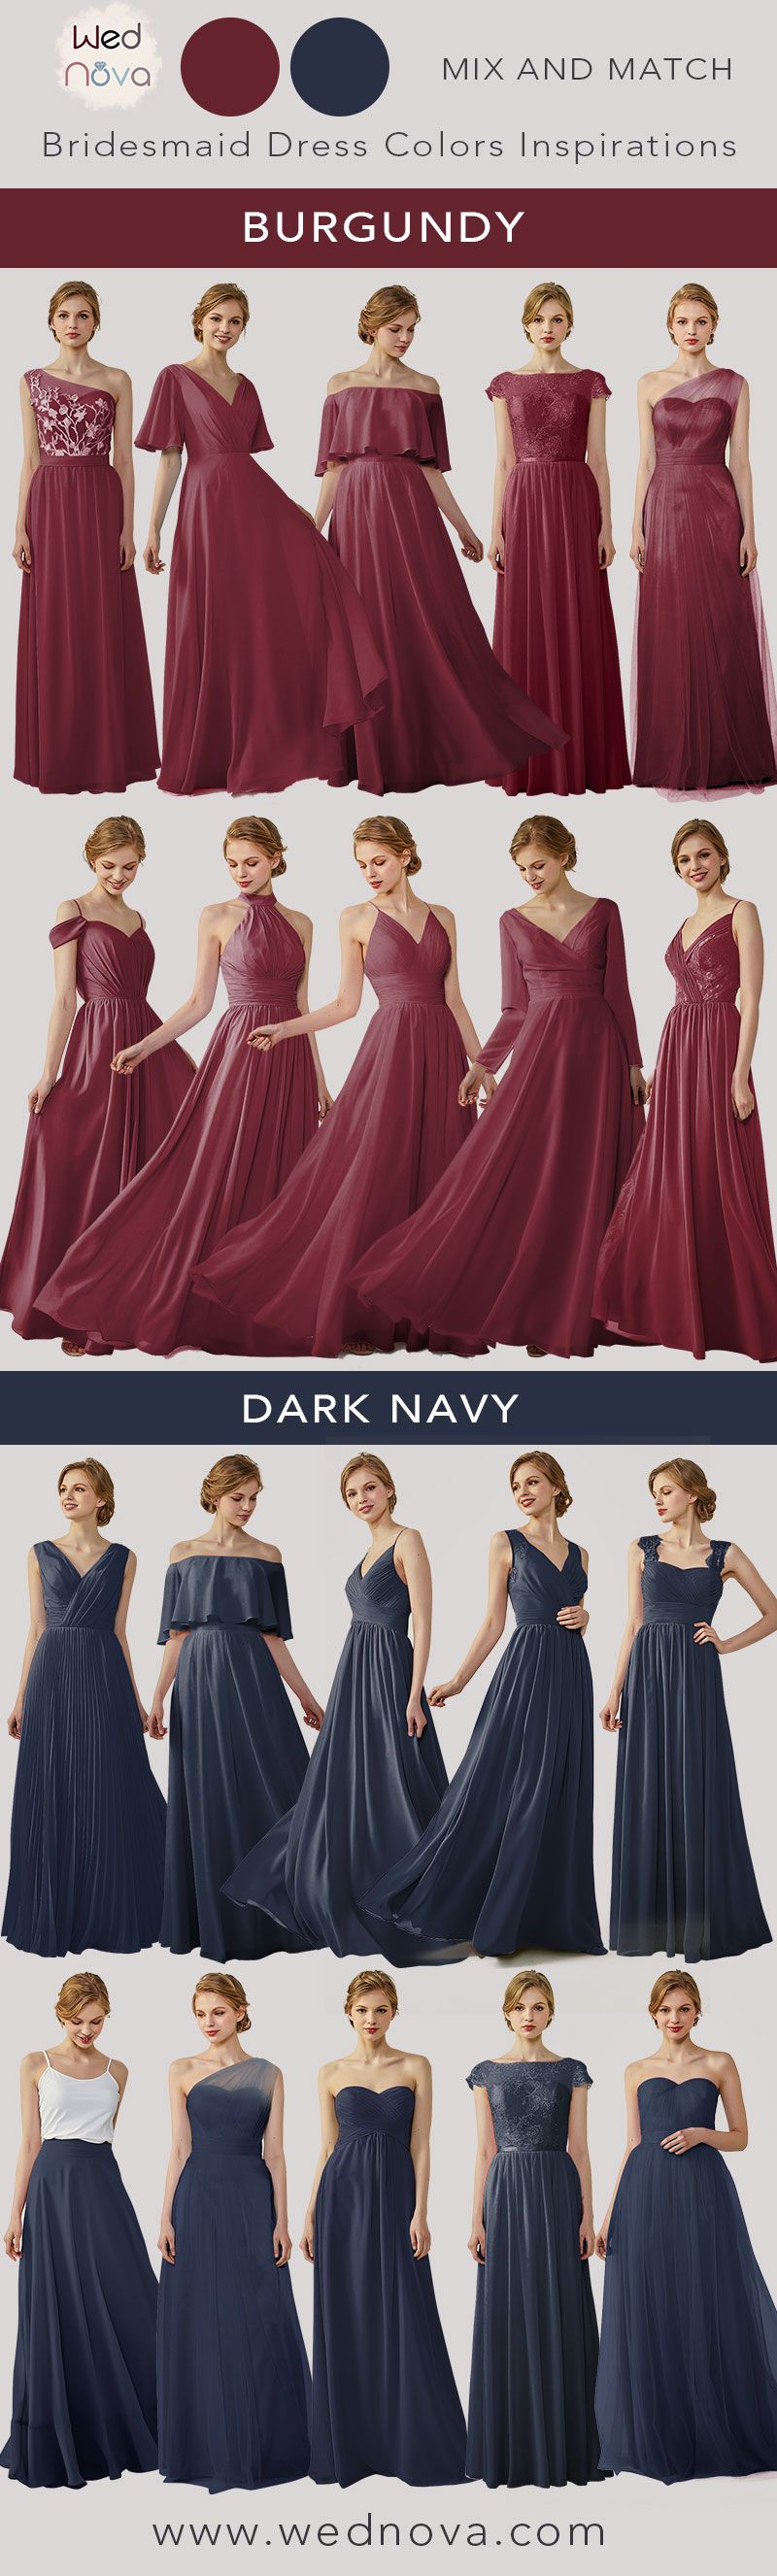 best bridesmaid dresses burgundy perfect quality dress dark